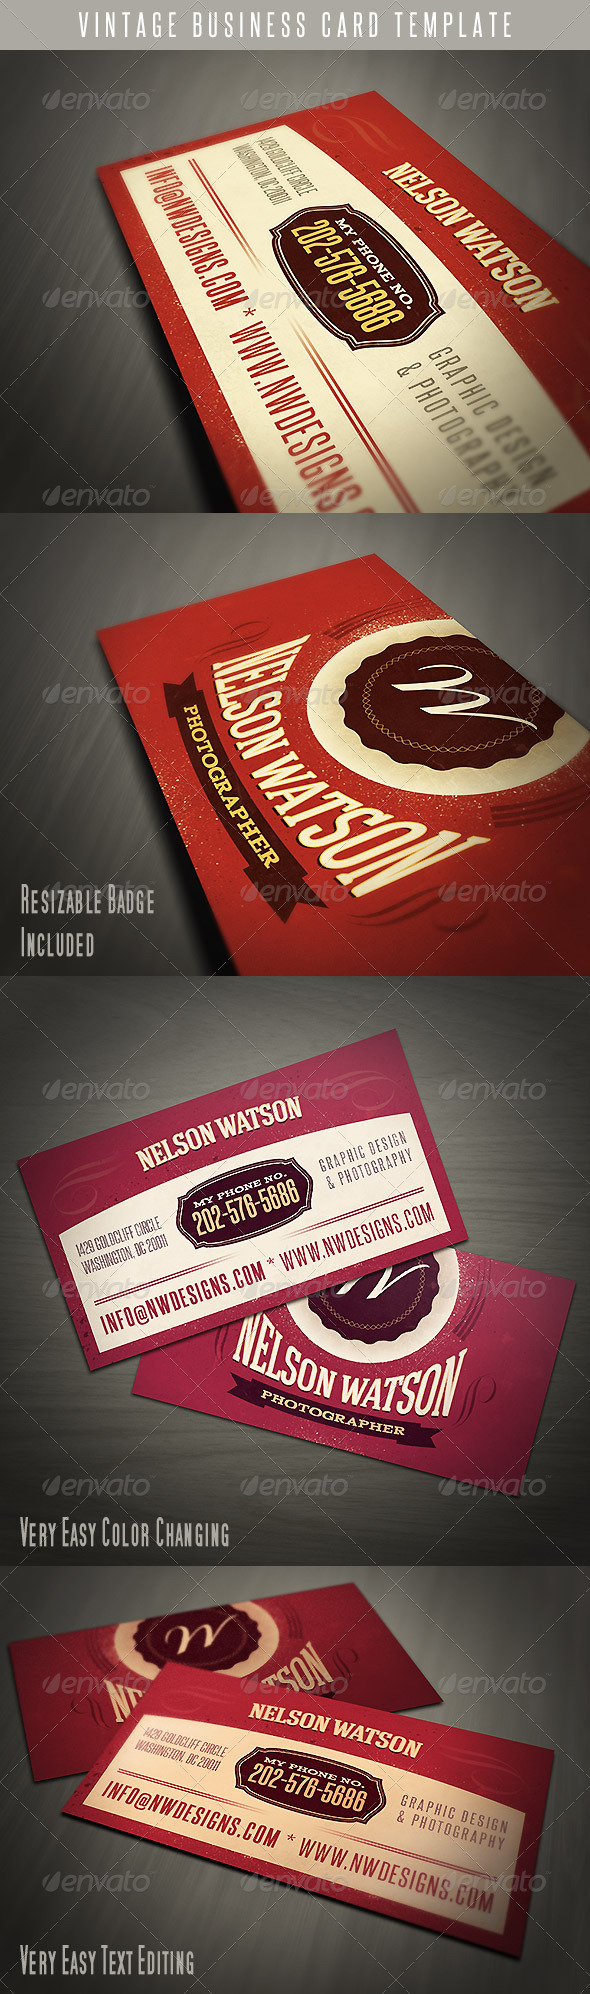 Vintage Business Card Template - Retro/Vintage Business Cards